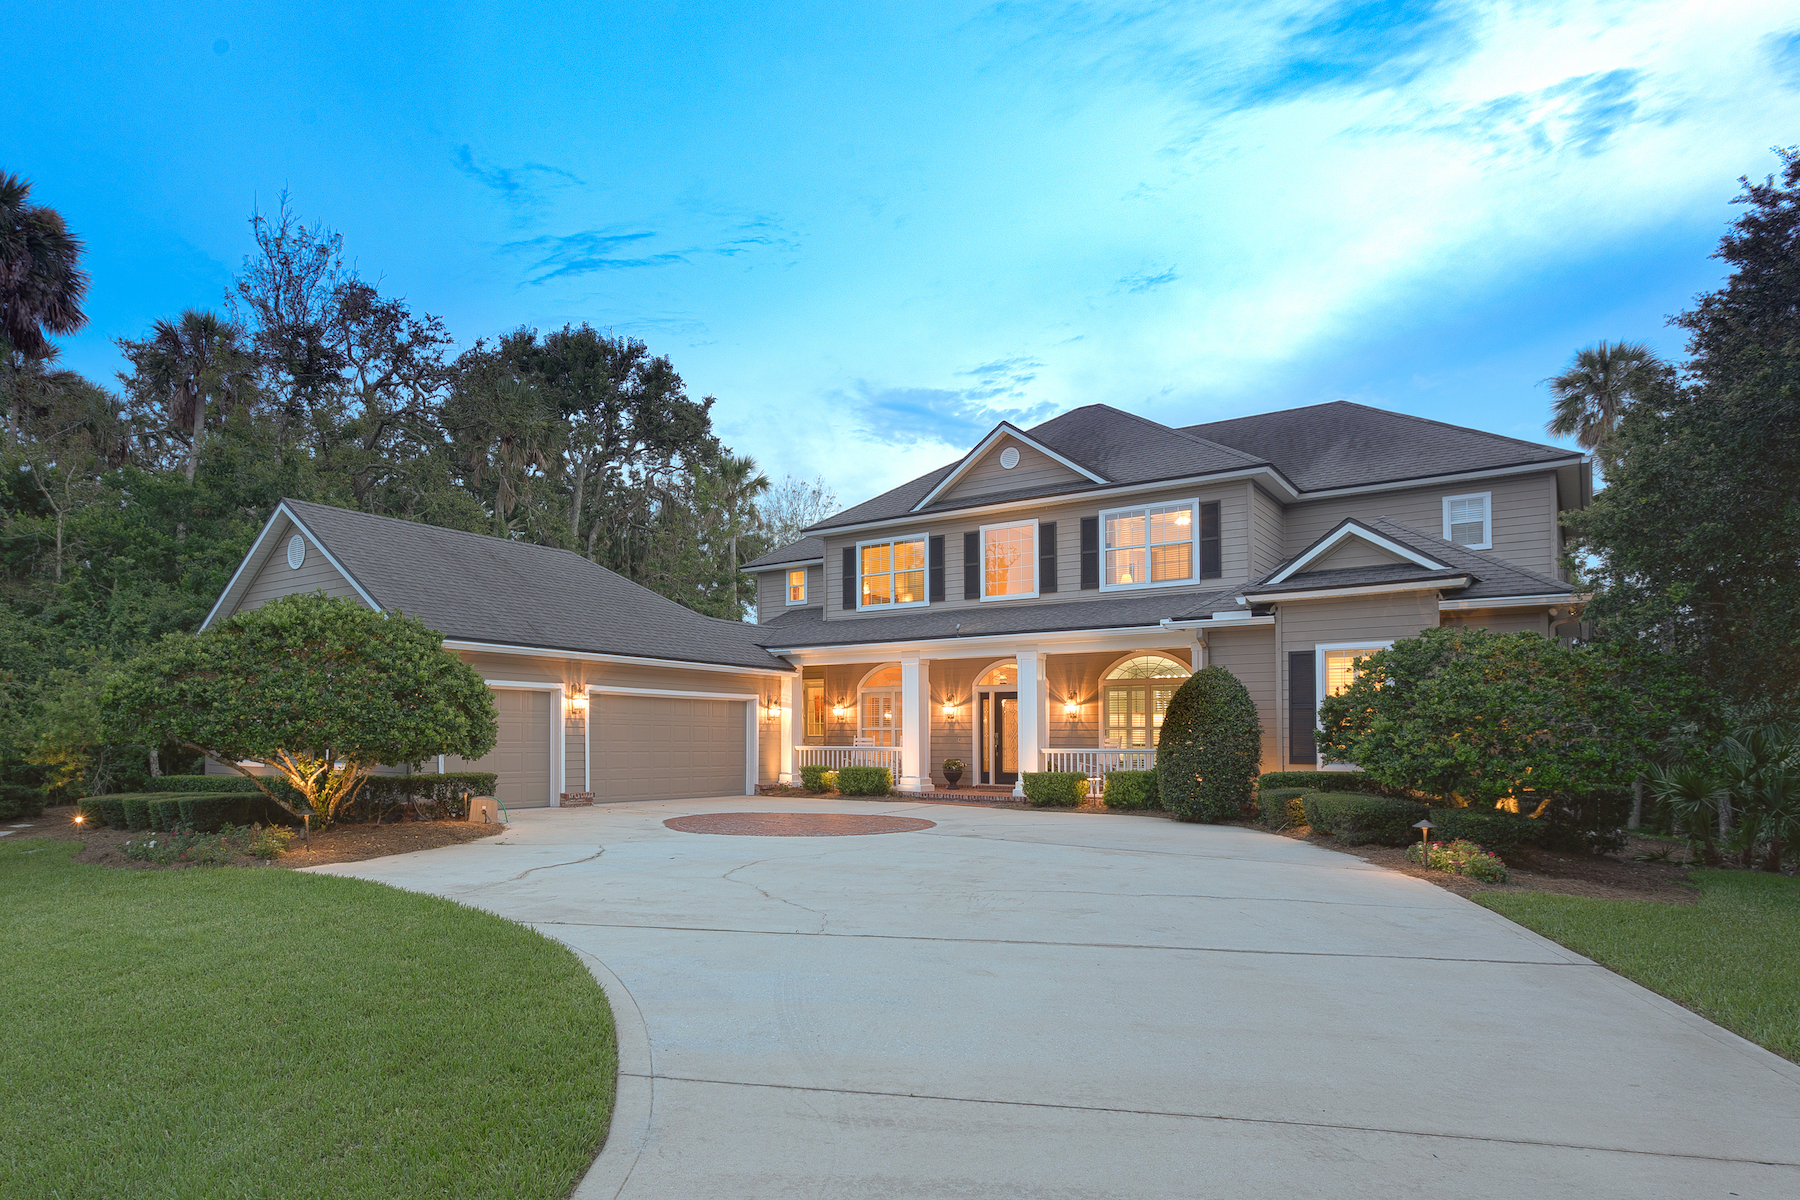 Single Family Homes for Sale at Hidden Gem in Ponte Vedra Beach 209 Isle Way Lane Ponte Vedra, Florida 32224 United States